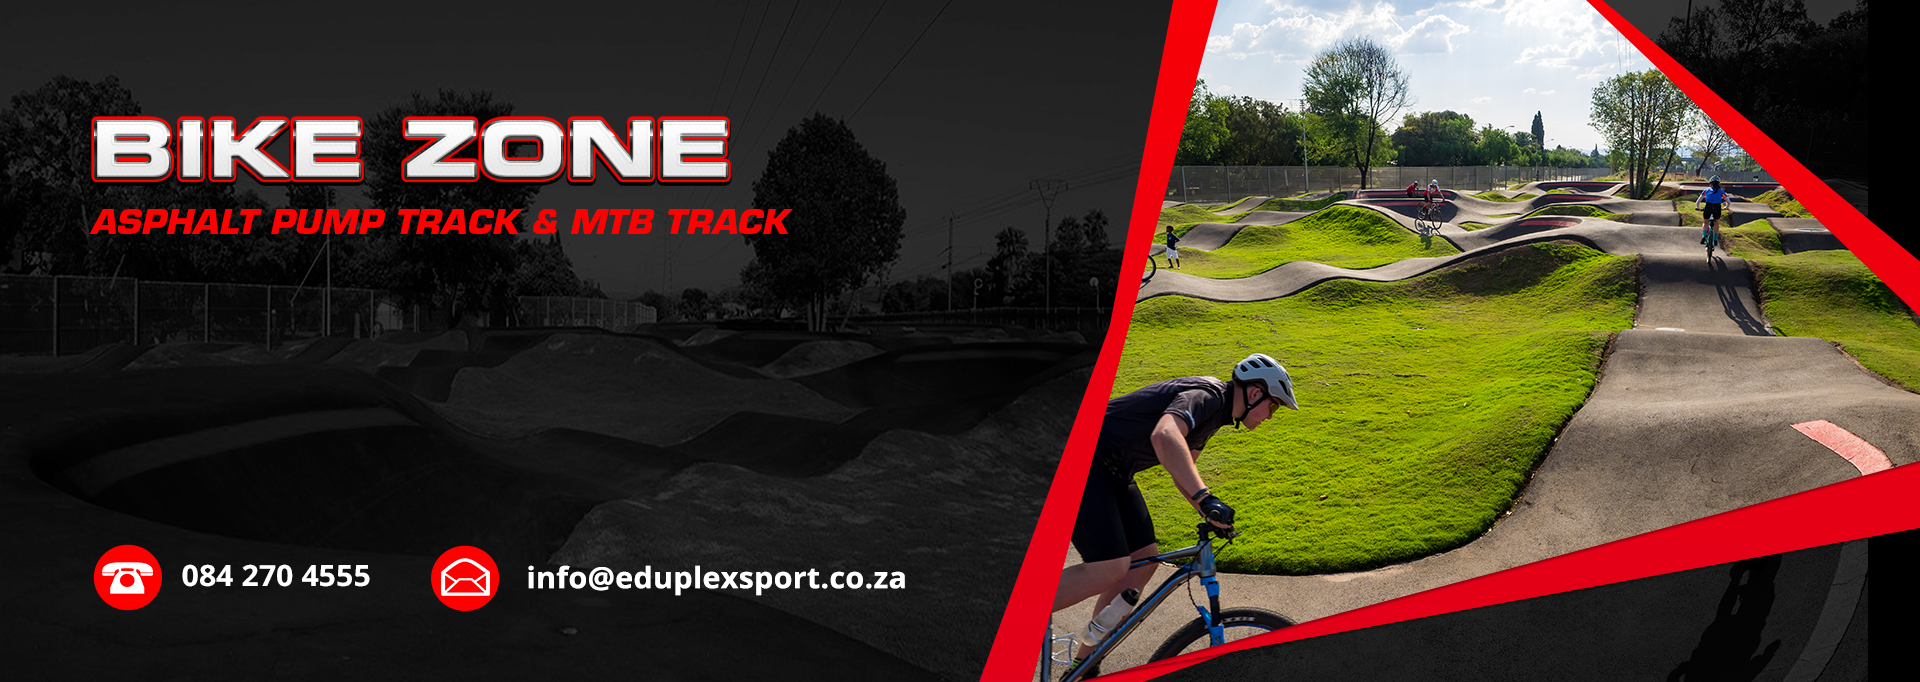 BIKE ZONE Pump Track